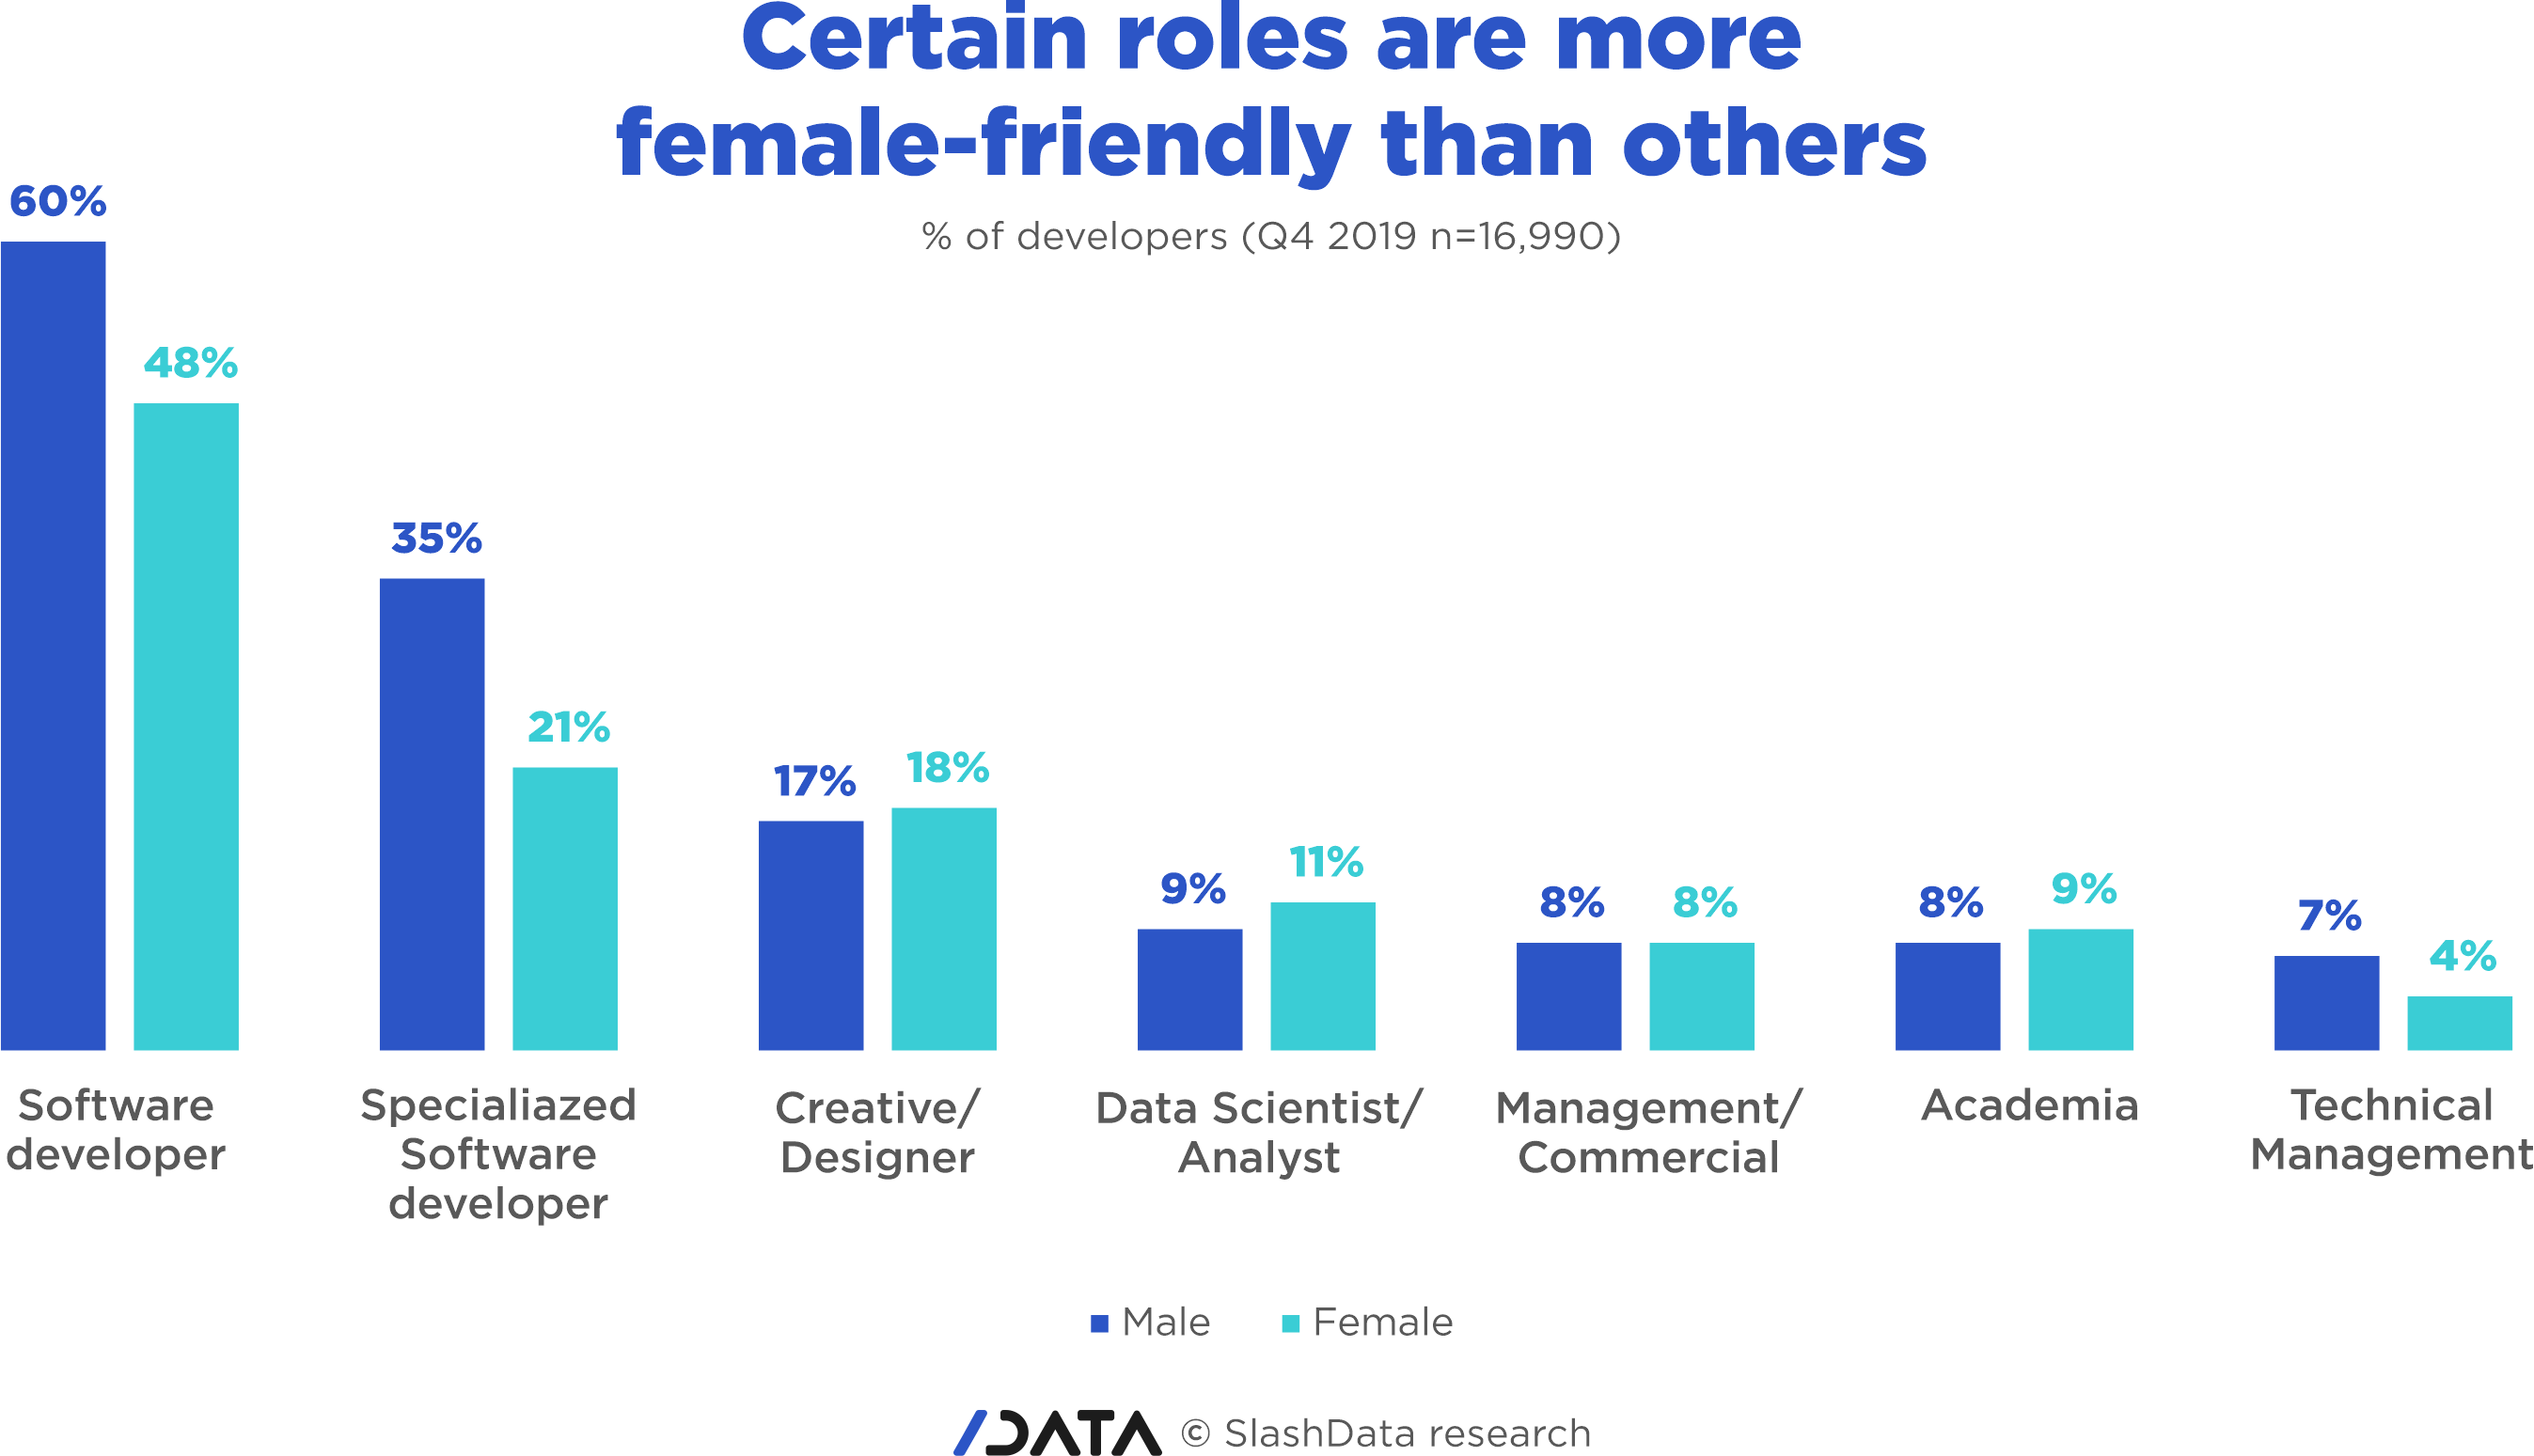 Gender gap - certain roles are more female-freindly than others